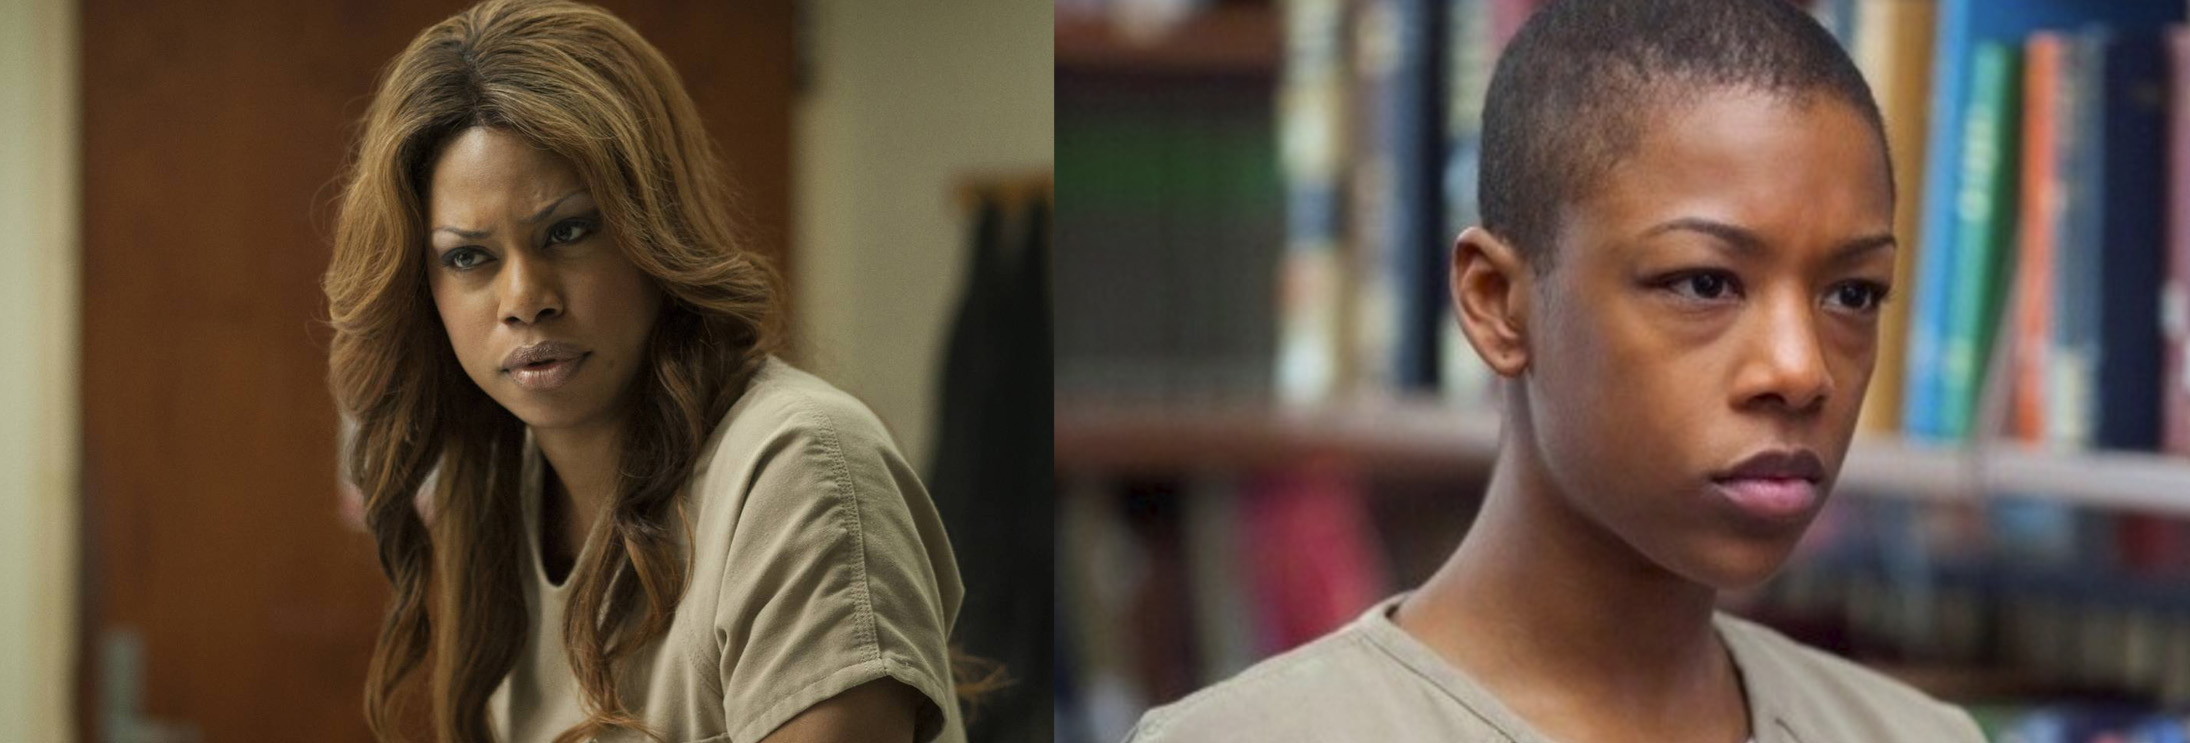 Sophia Burset and Poussey Washington from  Orange is the New Black  (2013-present).